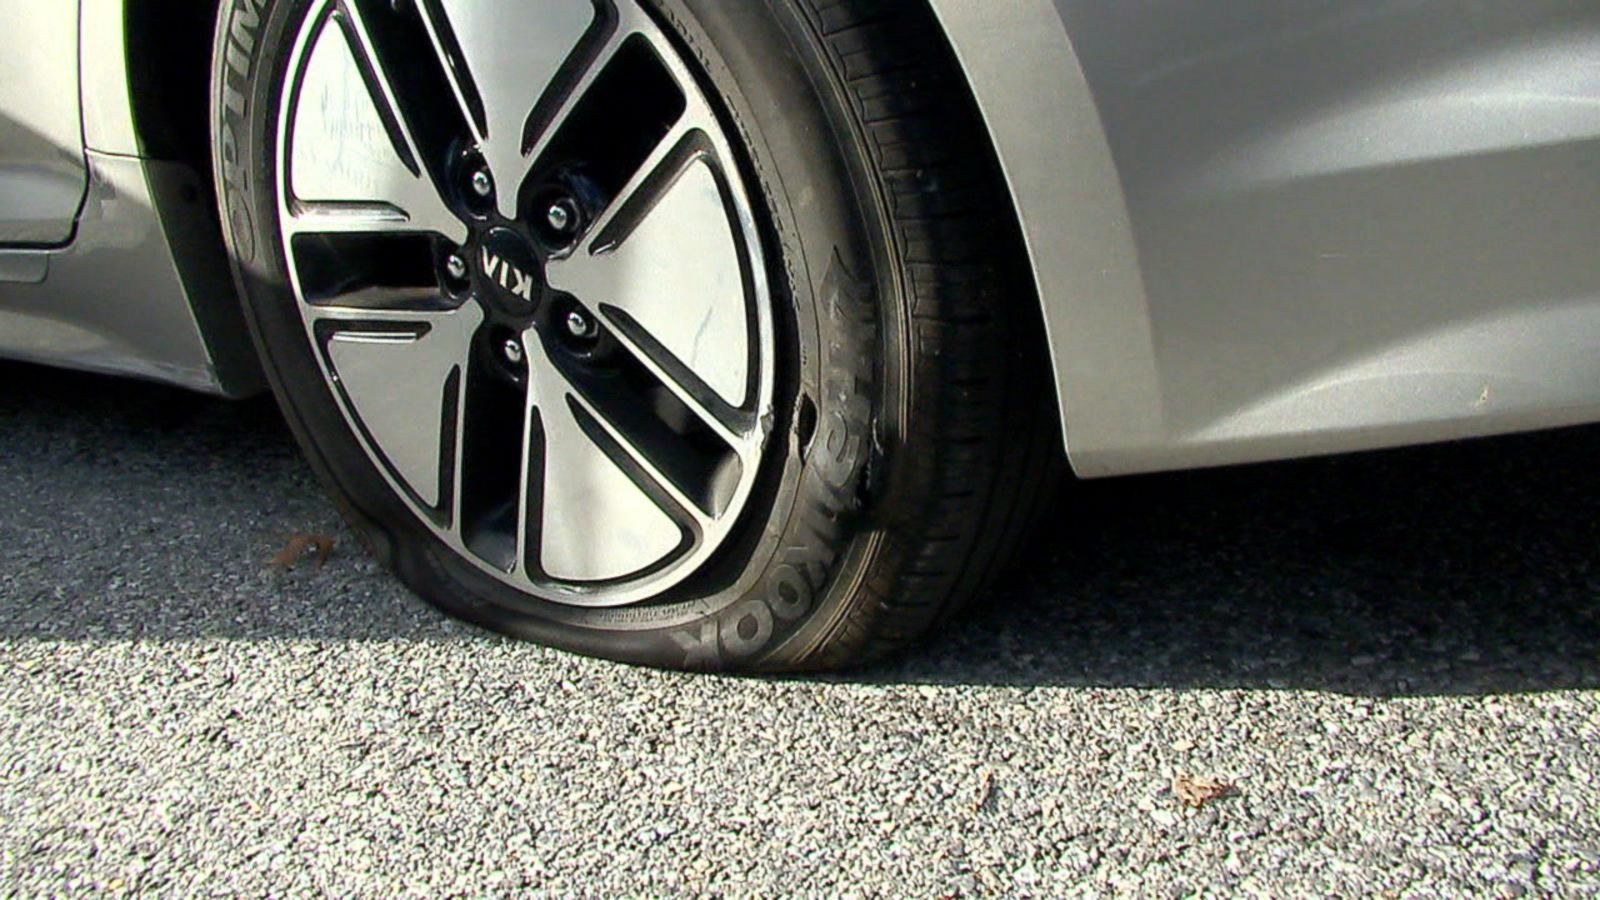 GMA' Investigates: New Cars Being Sold Without Spare Tires - ABC News